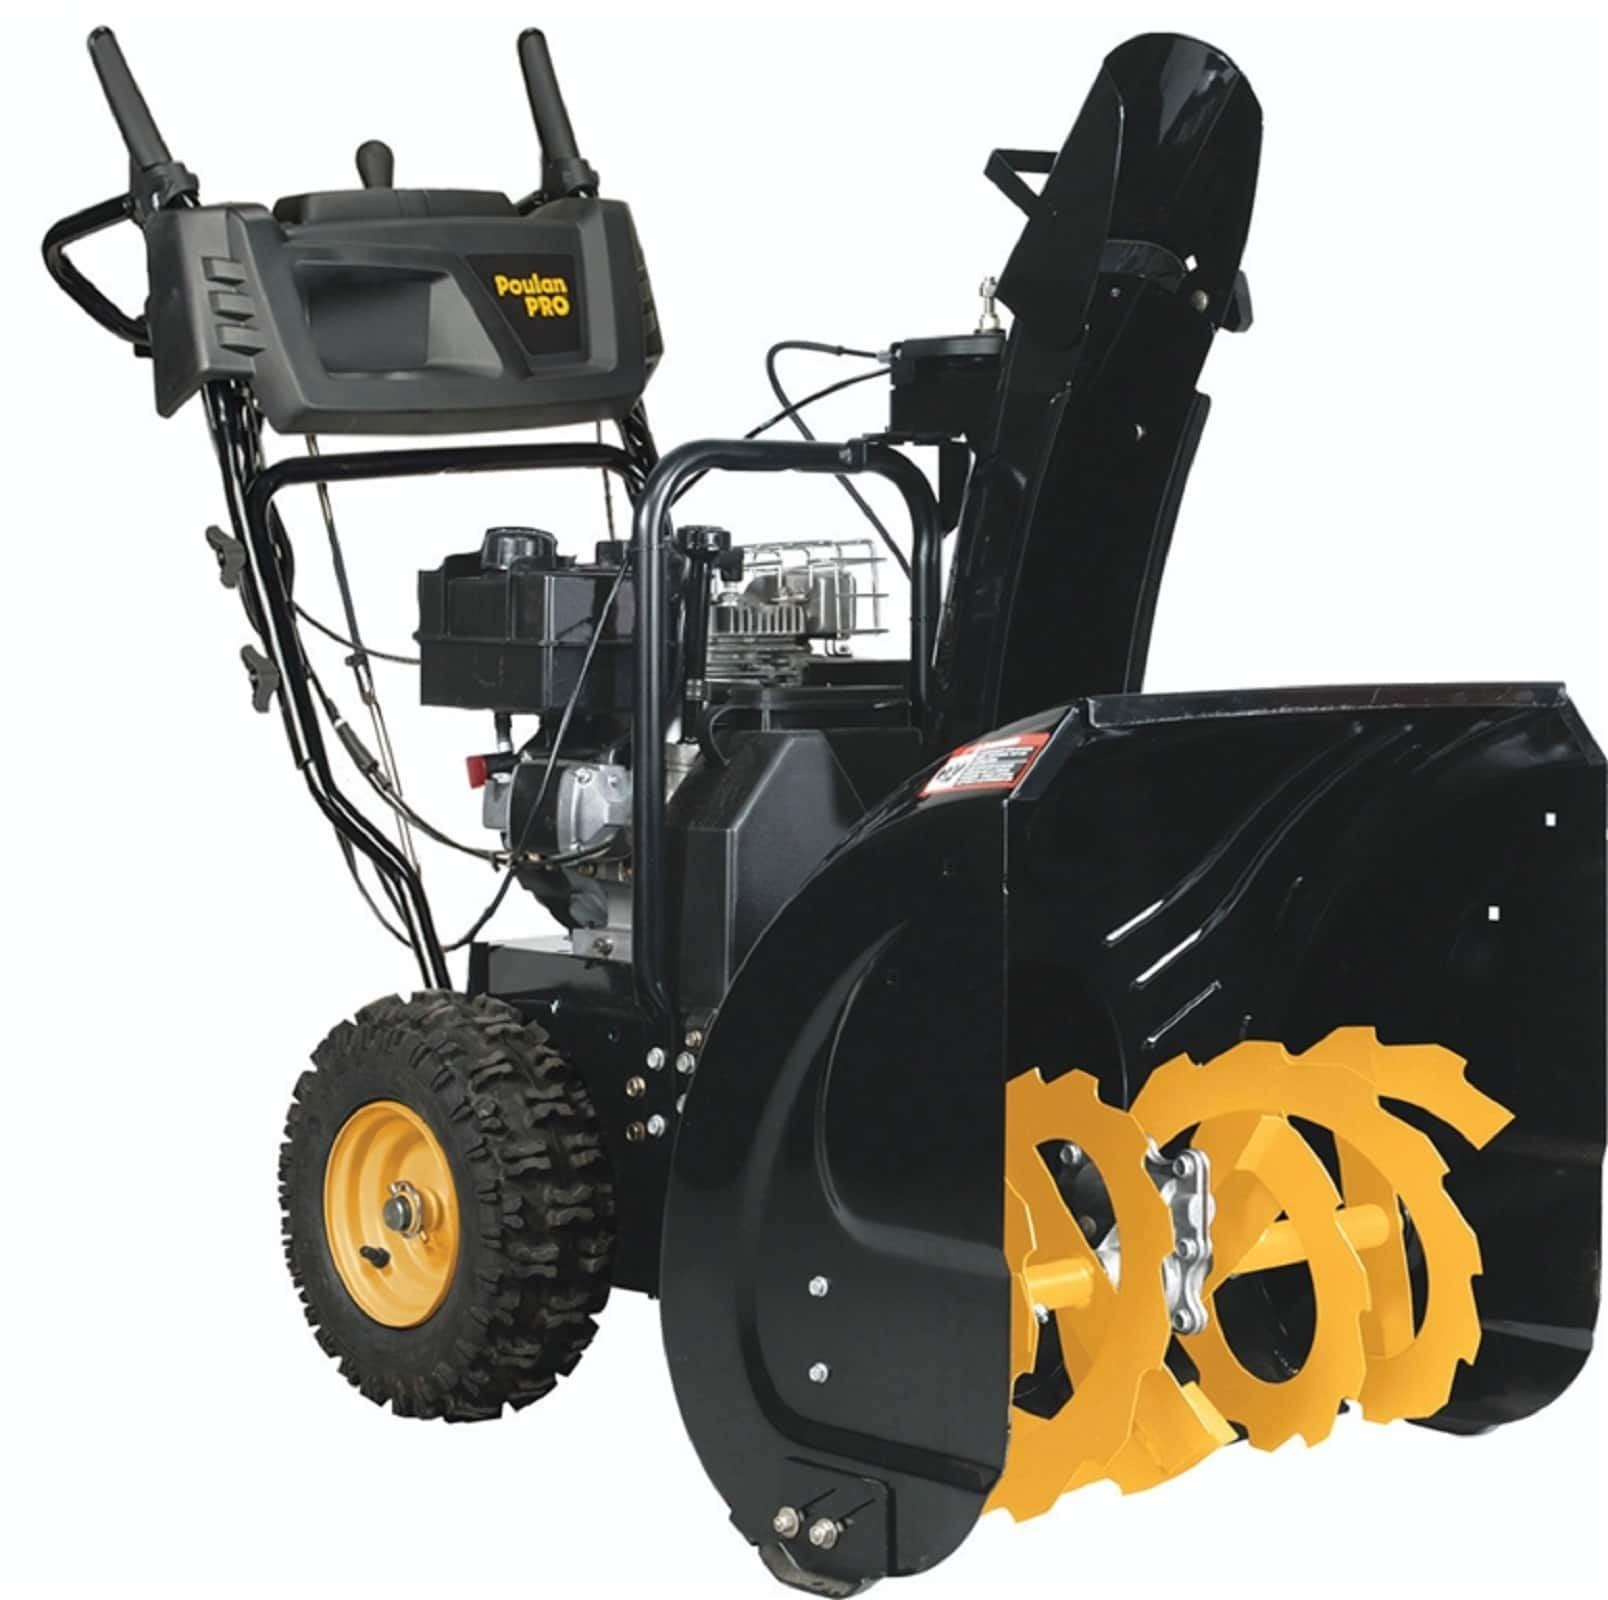 Sears Outlet : Poulan Pro 179cc Gas 24 in. Two Stage Snow Thrower , $238.49 , IL ,MO ,KS $238.29